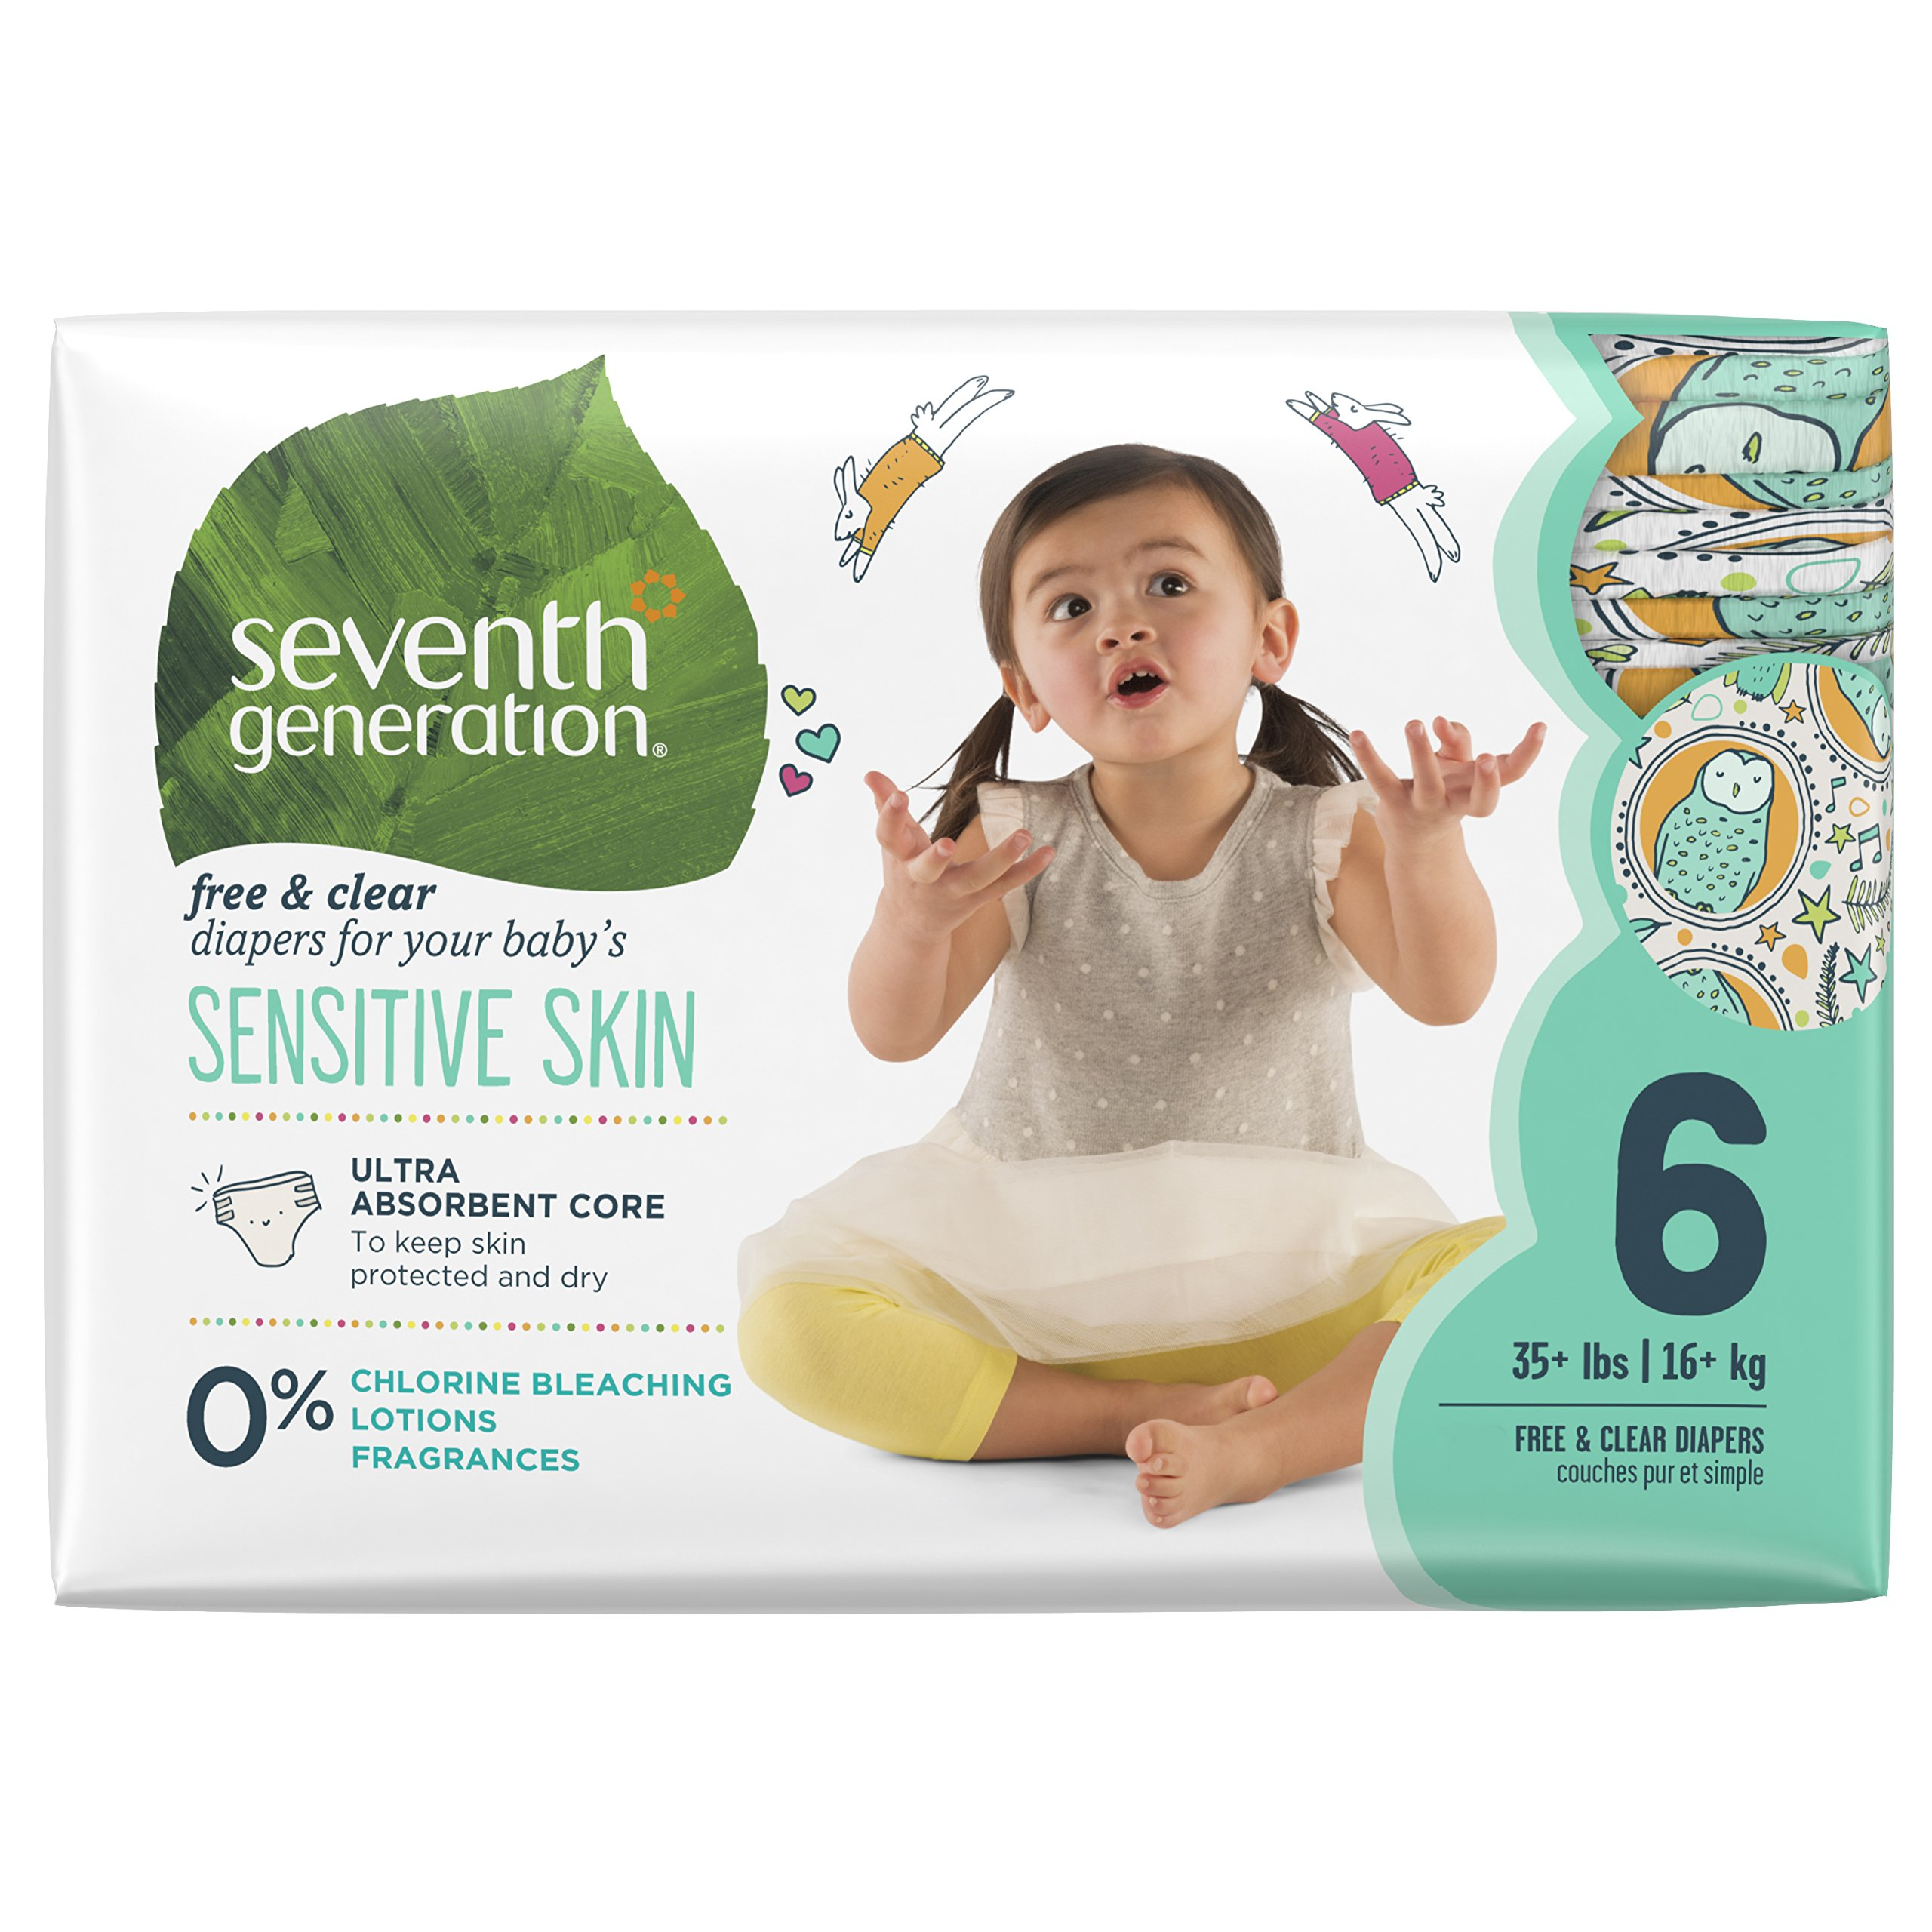 Seventh Generation Baby Diapers, Free & Clear for Sensitive Skin with Animal Prints, Size 6, 100 count (Packaging May Vary)